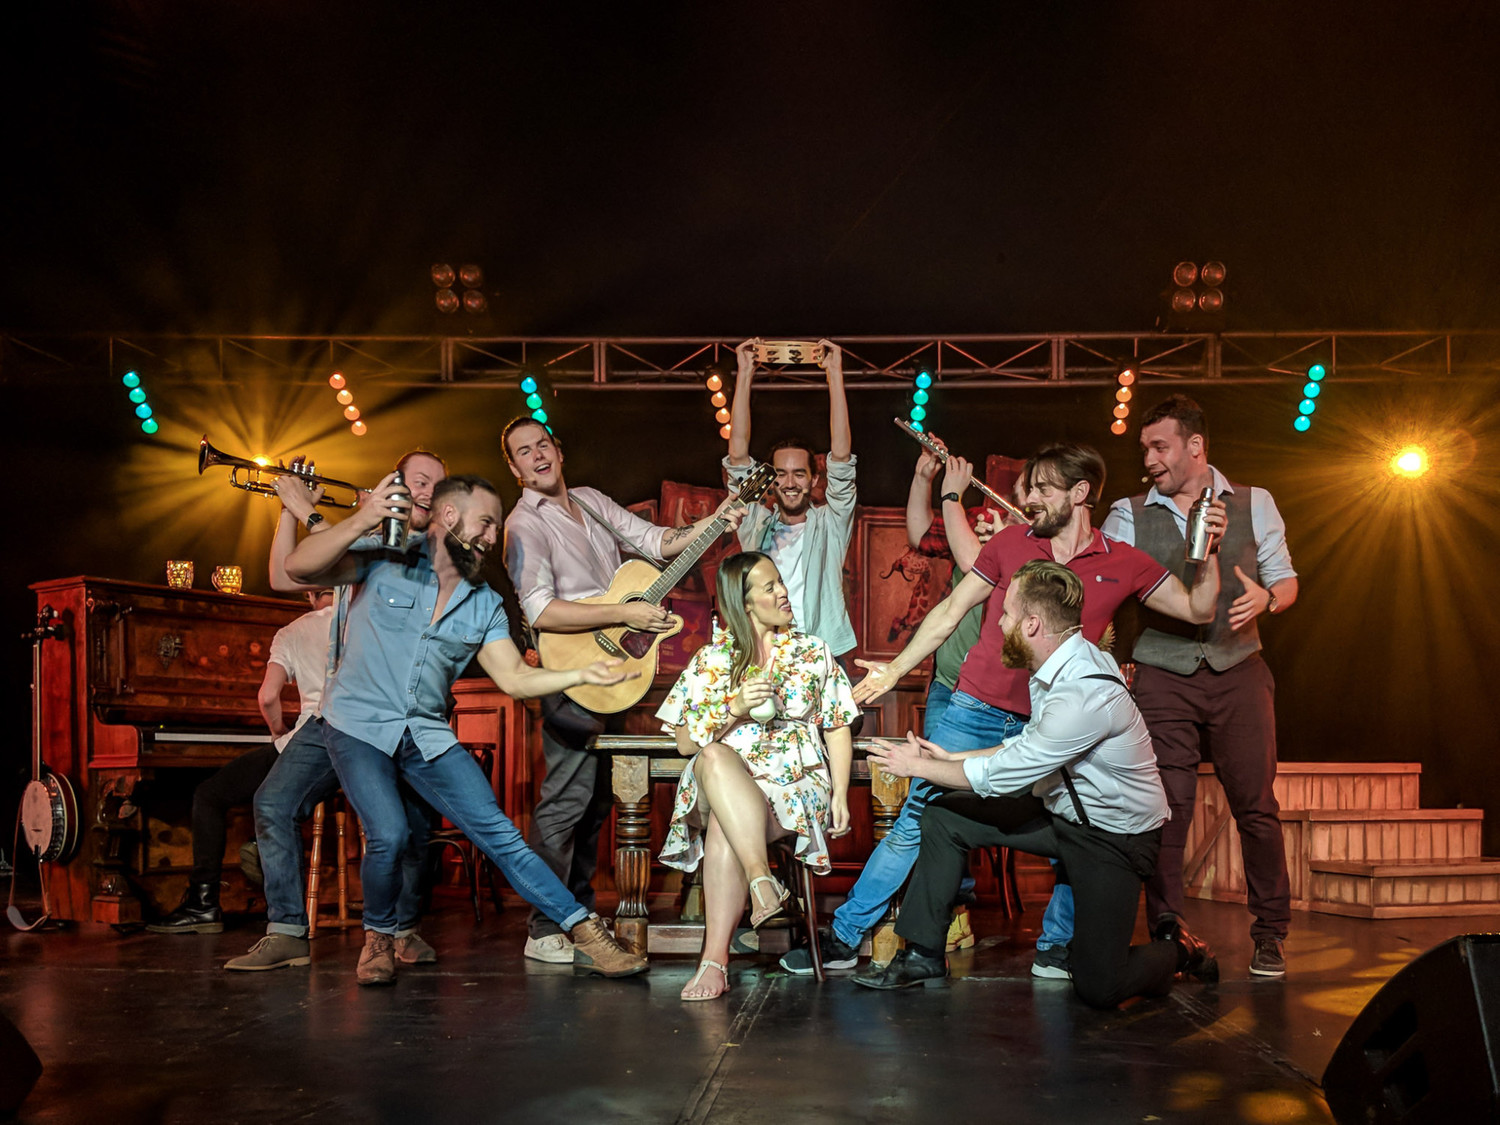 BWW Interview: THE CHOIR OF MAN'S  Denis Grindel Raises a Glass to Ireland, Friendship, and Manhood in Advance of DPAC Show